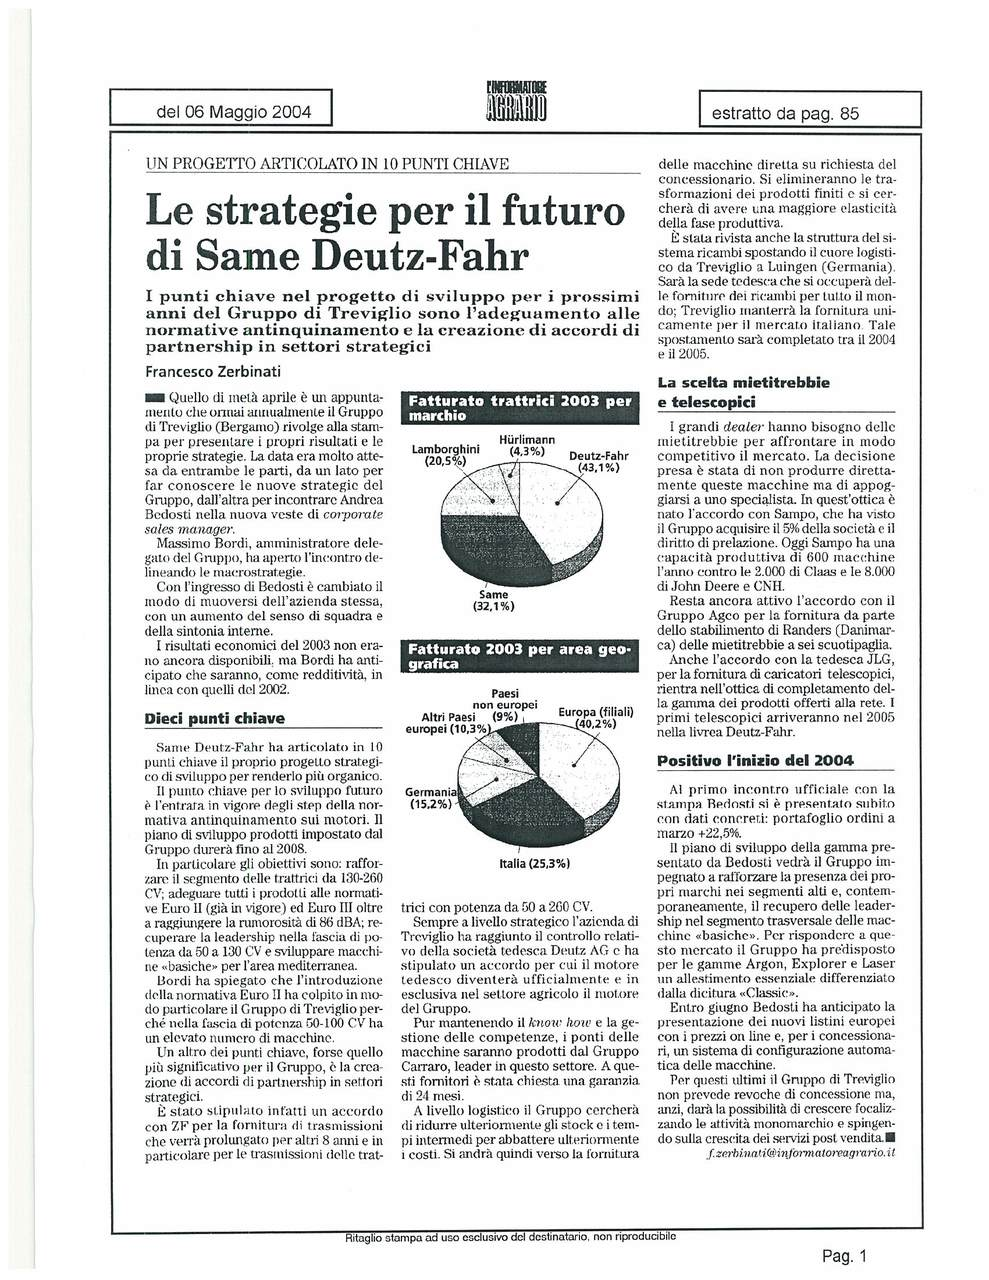 La strategia per il futuro